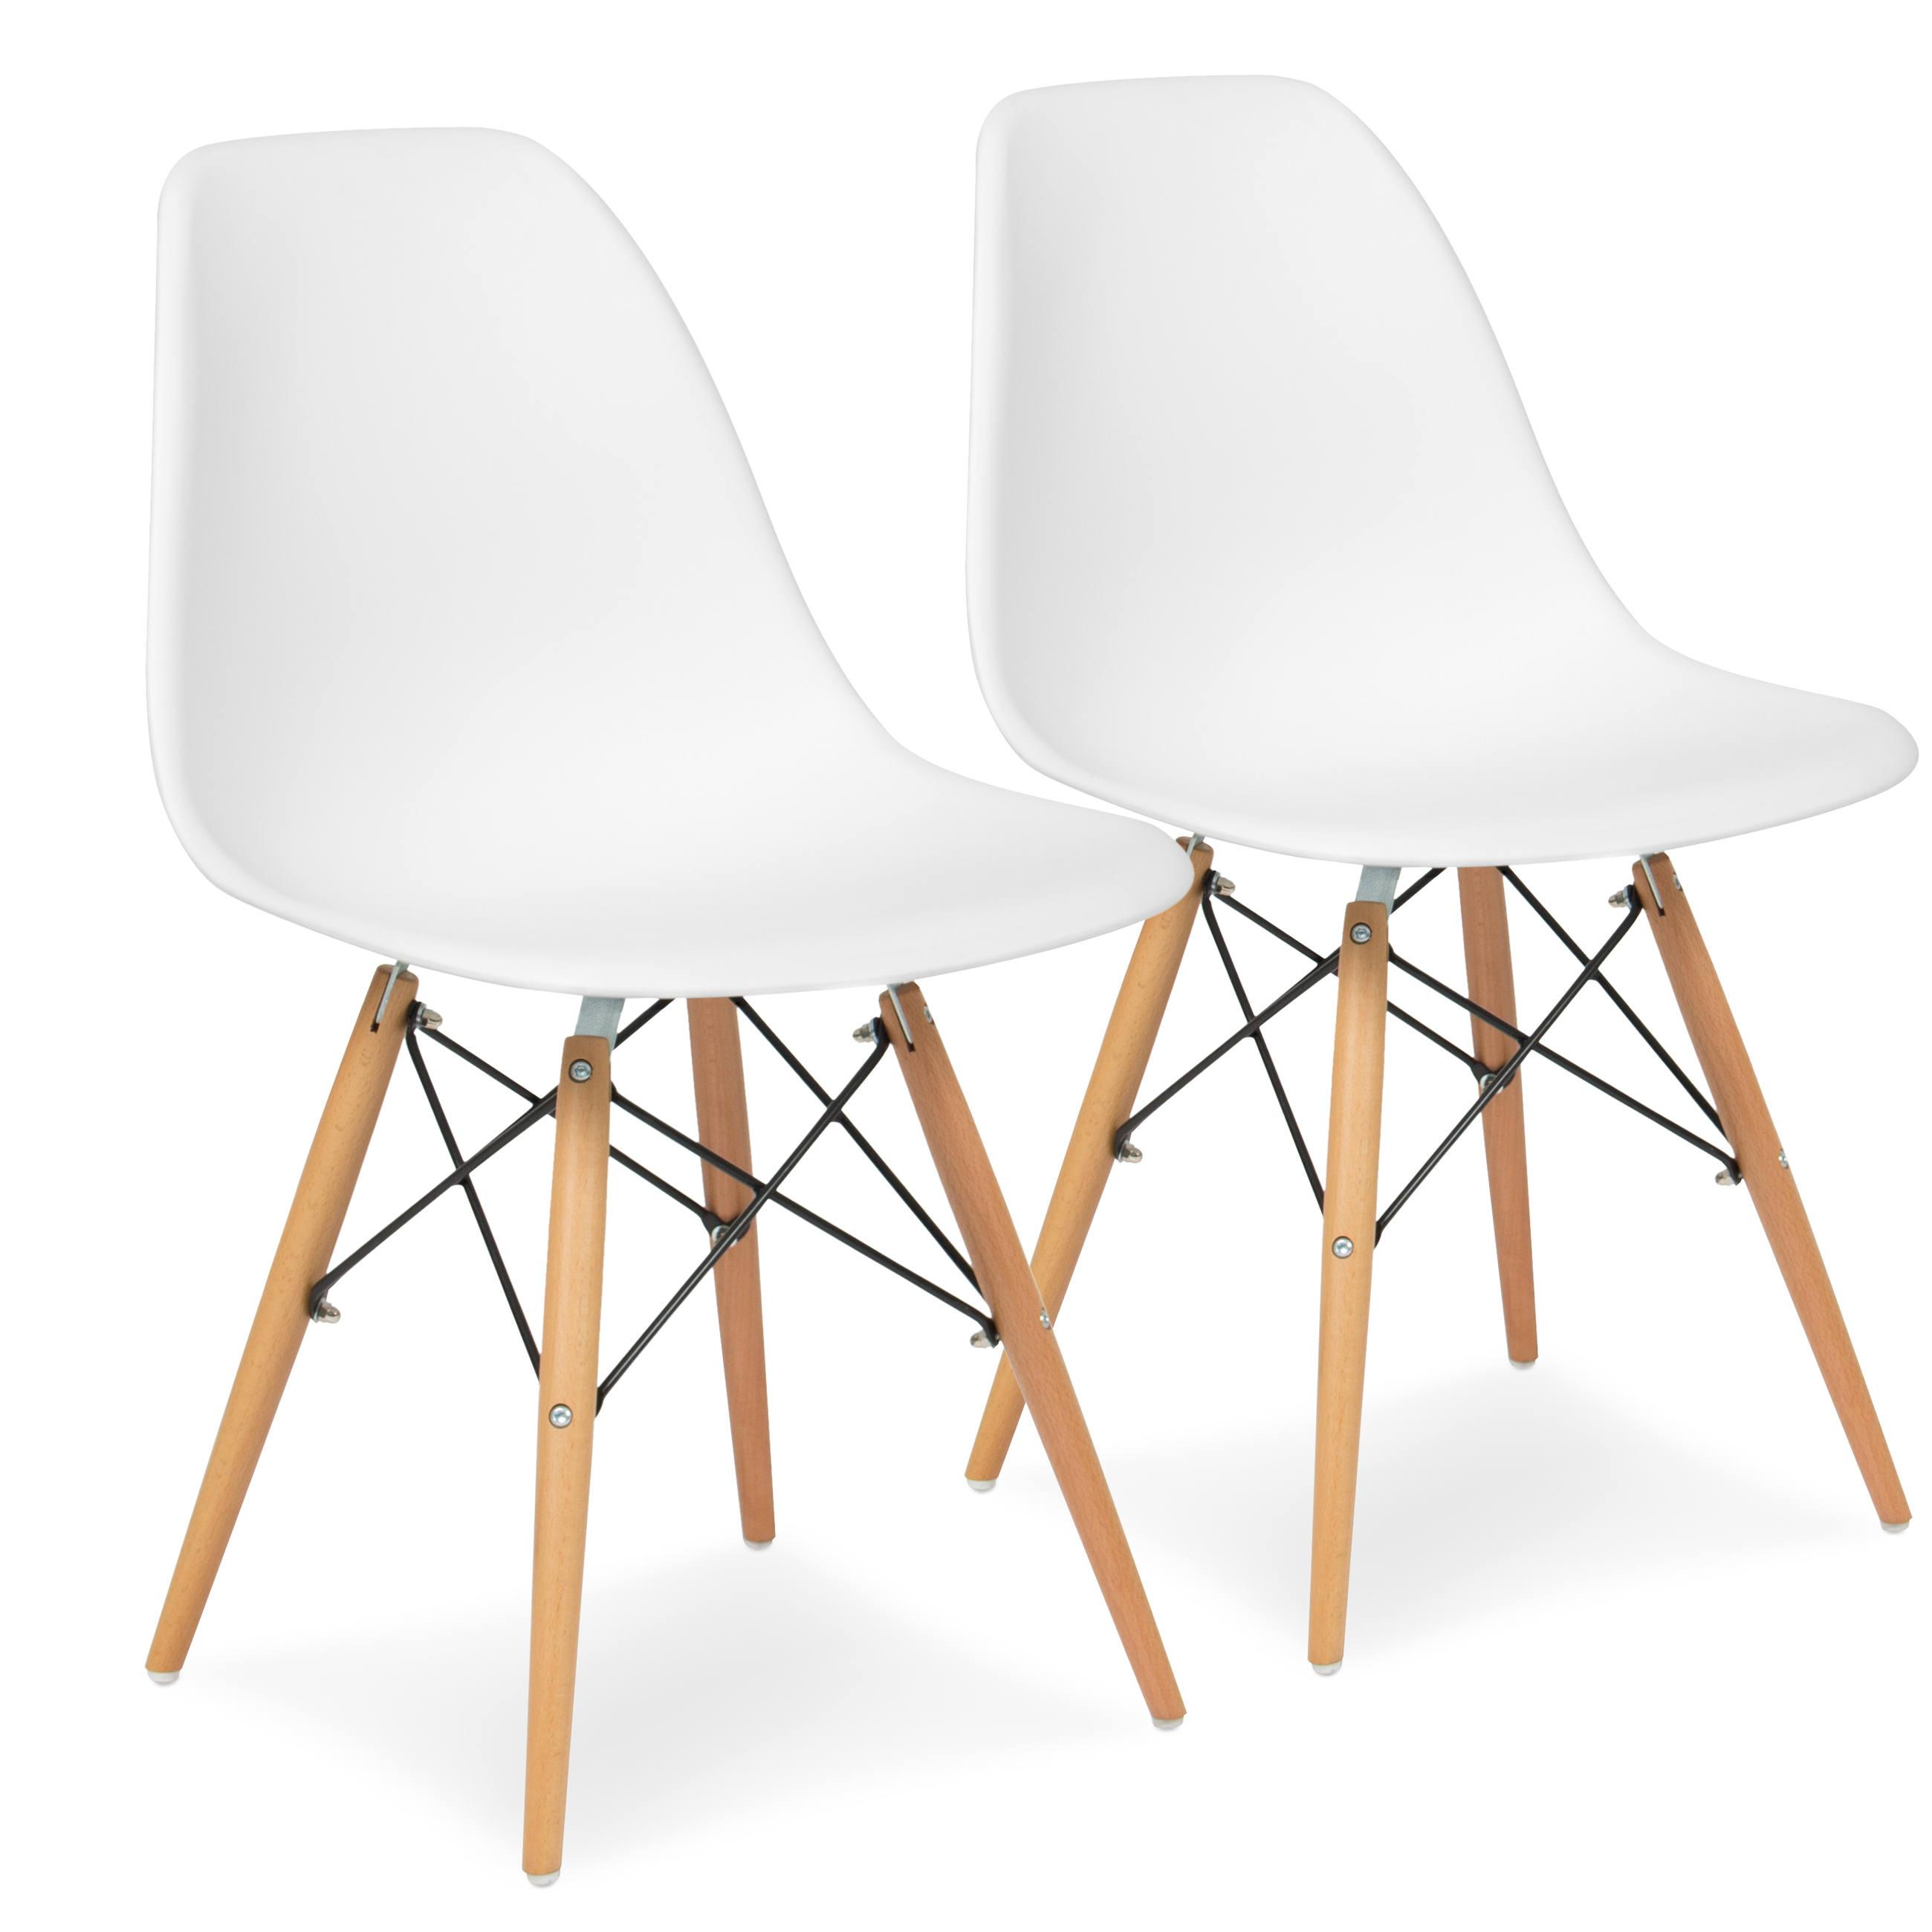 Best Choice Products Set of 2 Eames Style Dining Chair Mid Century Modern Molded Plastic Shell Arm Chair - White